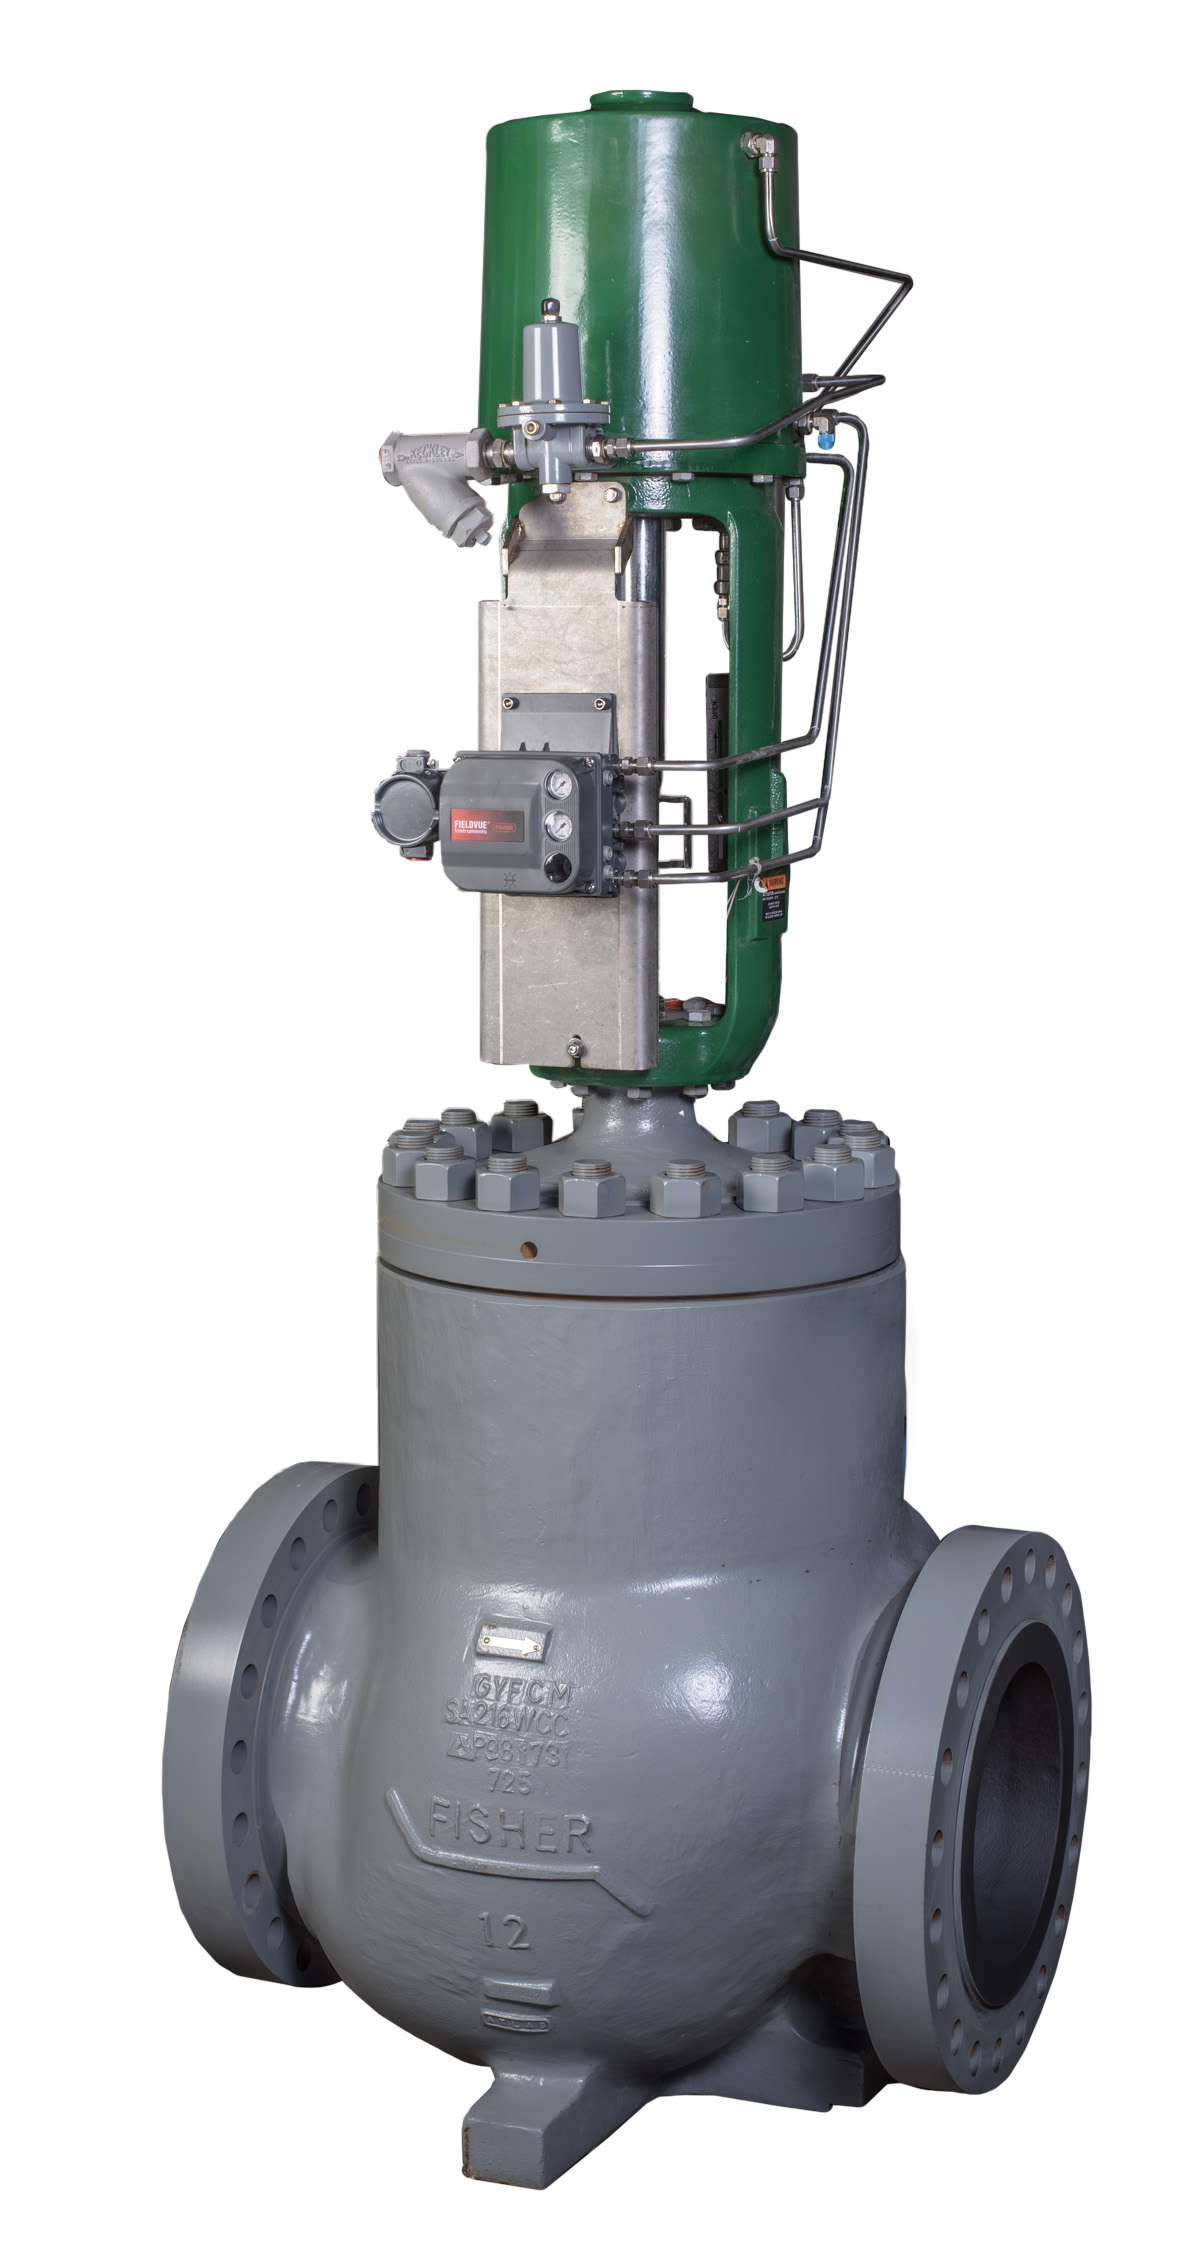 remanufactured-fisher-12-inch-EUT-control-valve-with-585C-actuator-and-dvc6010